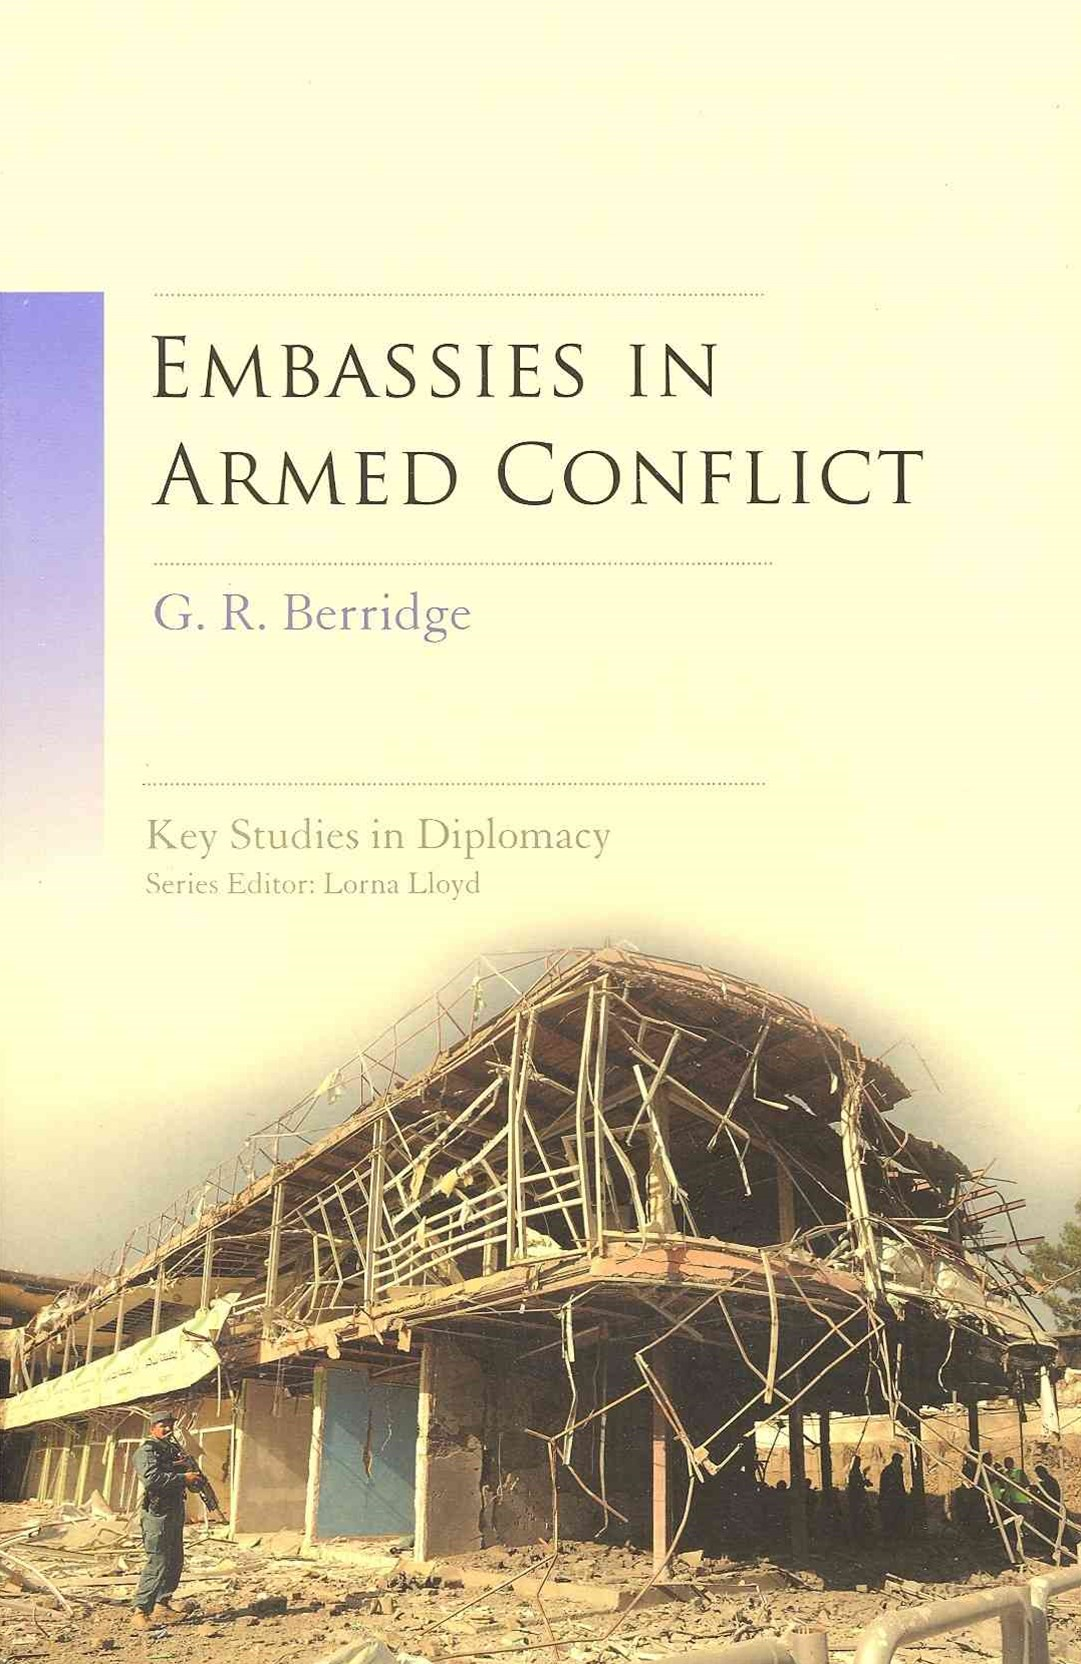 Embassies in Armed Conflict